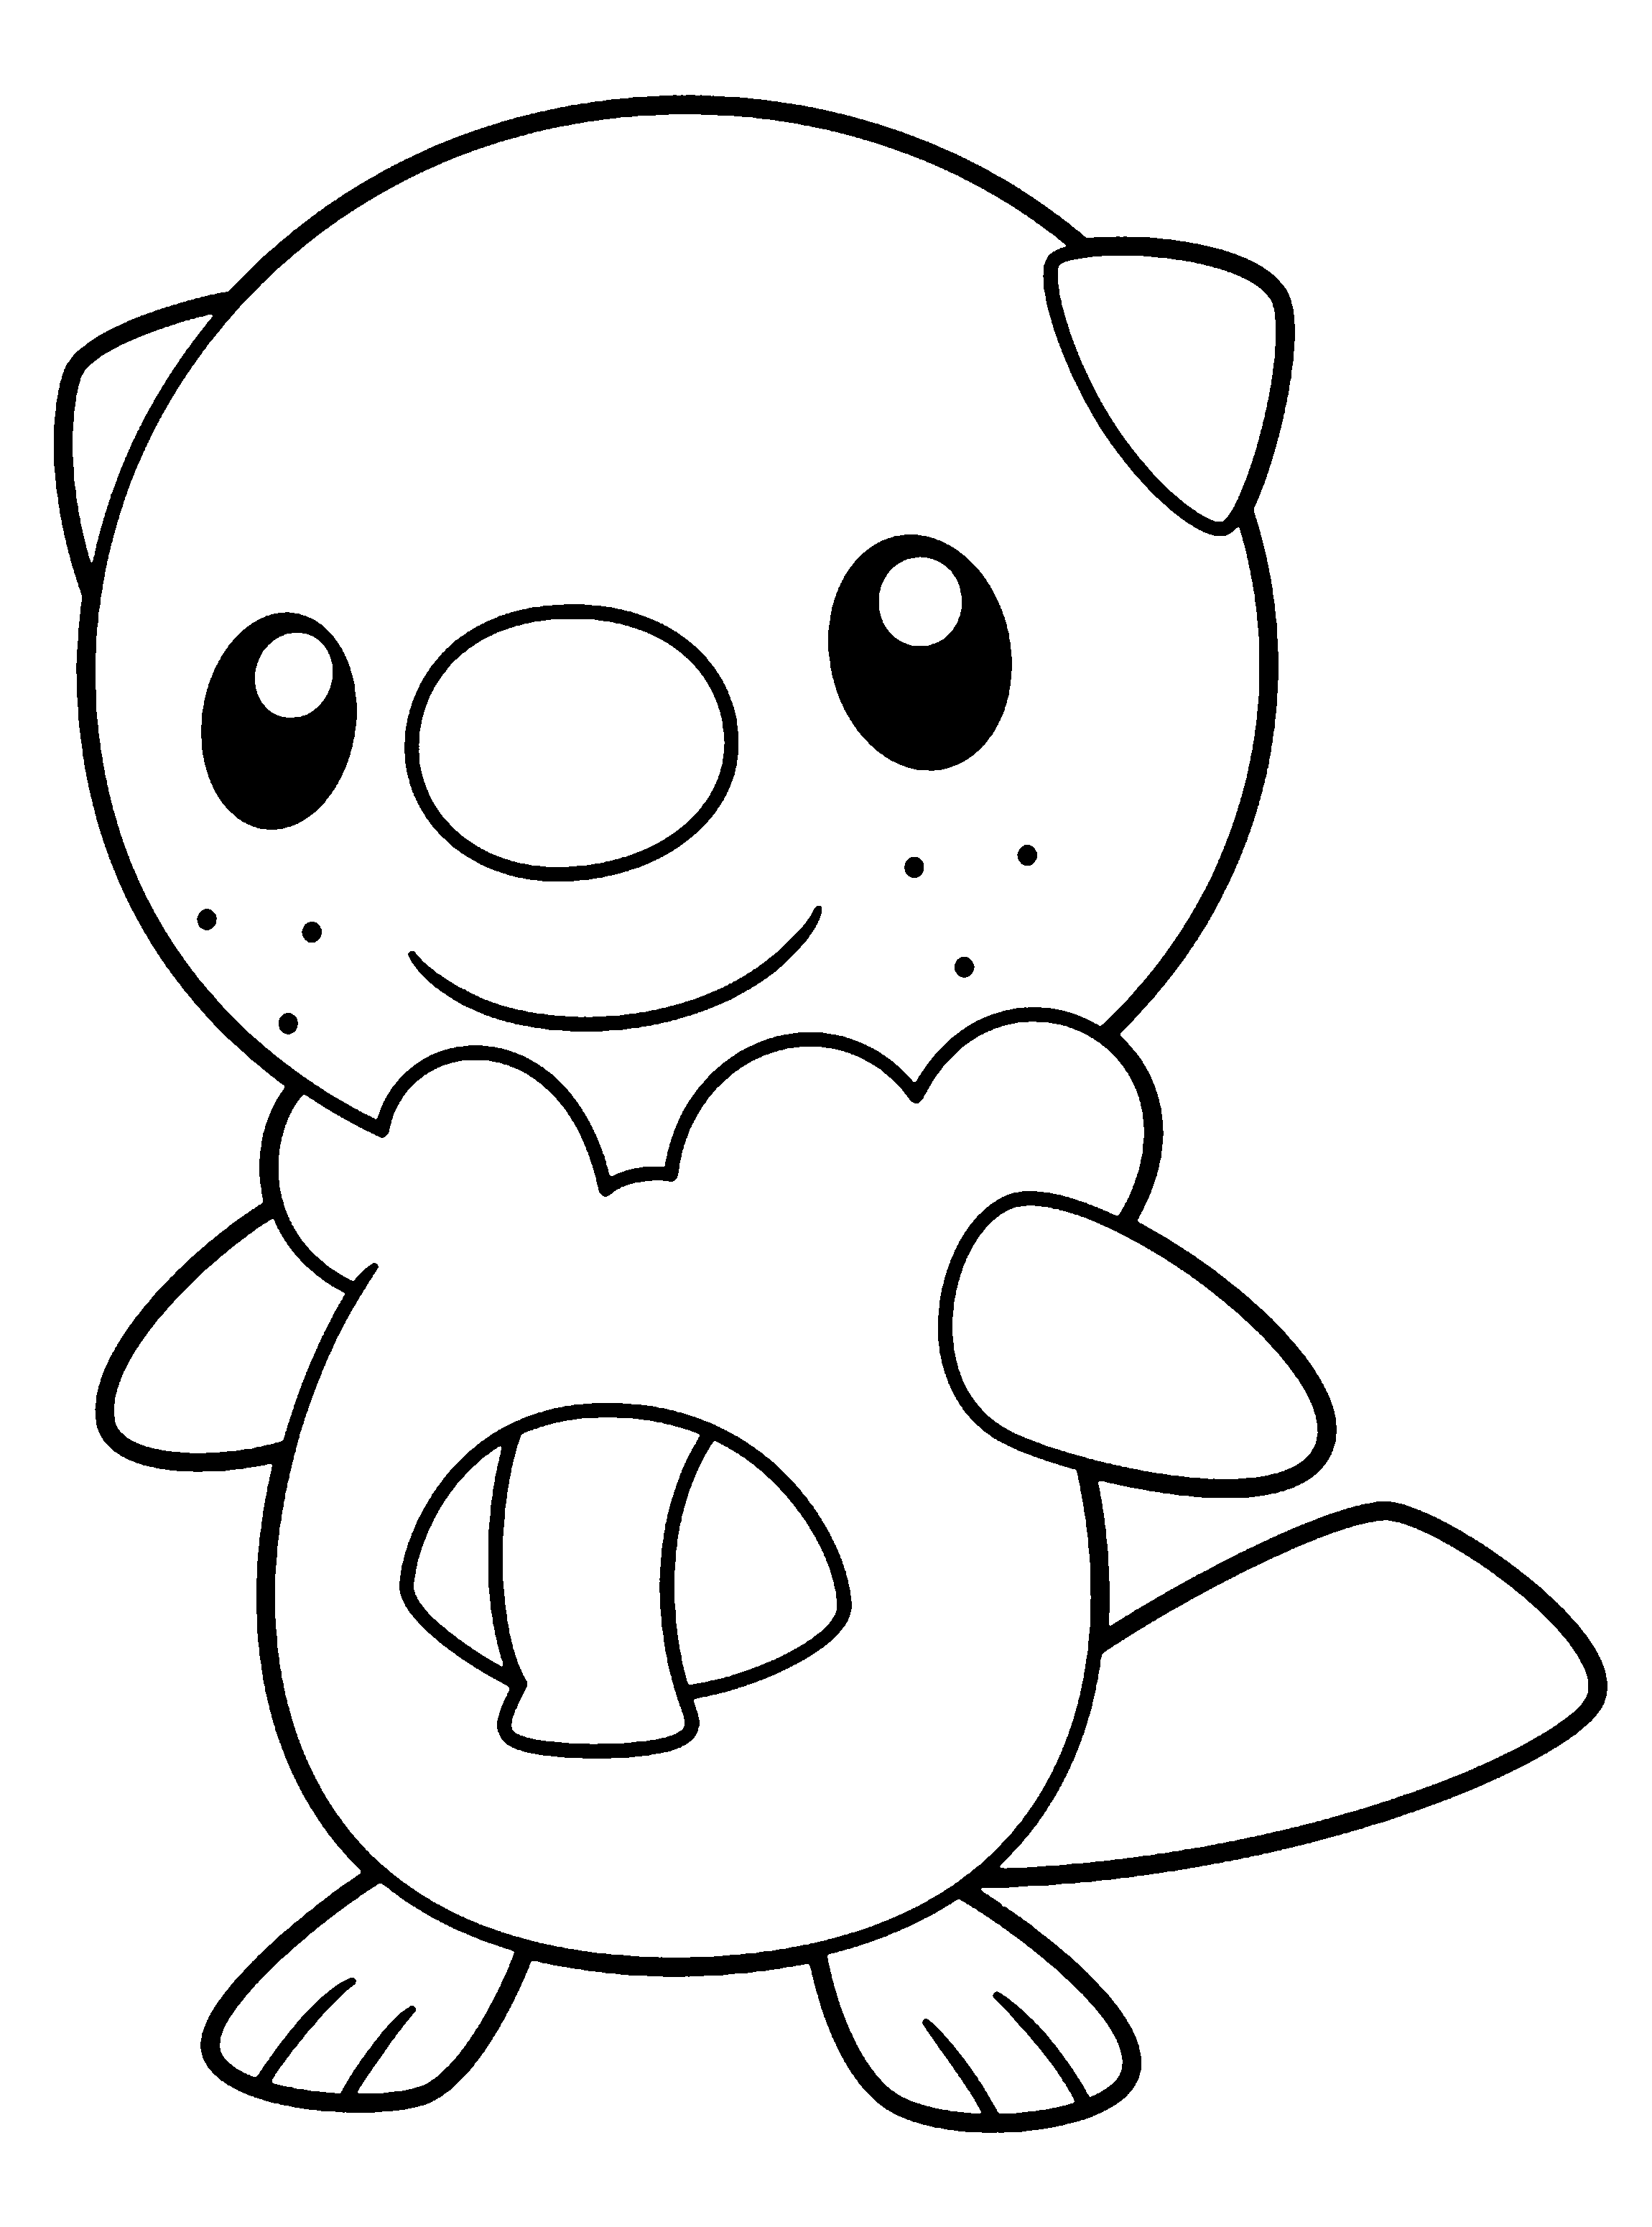 pokemon coloring pages google images - photo#16